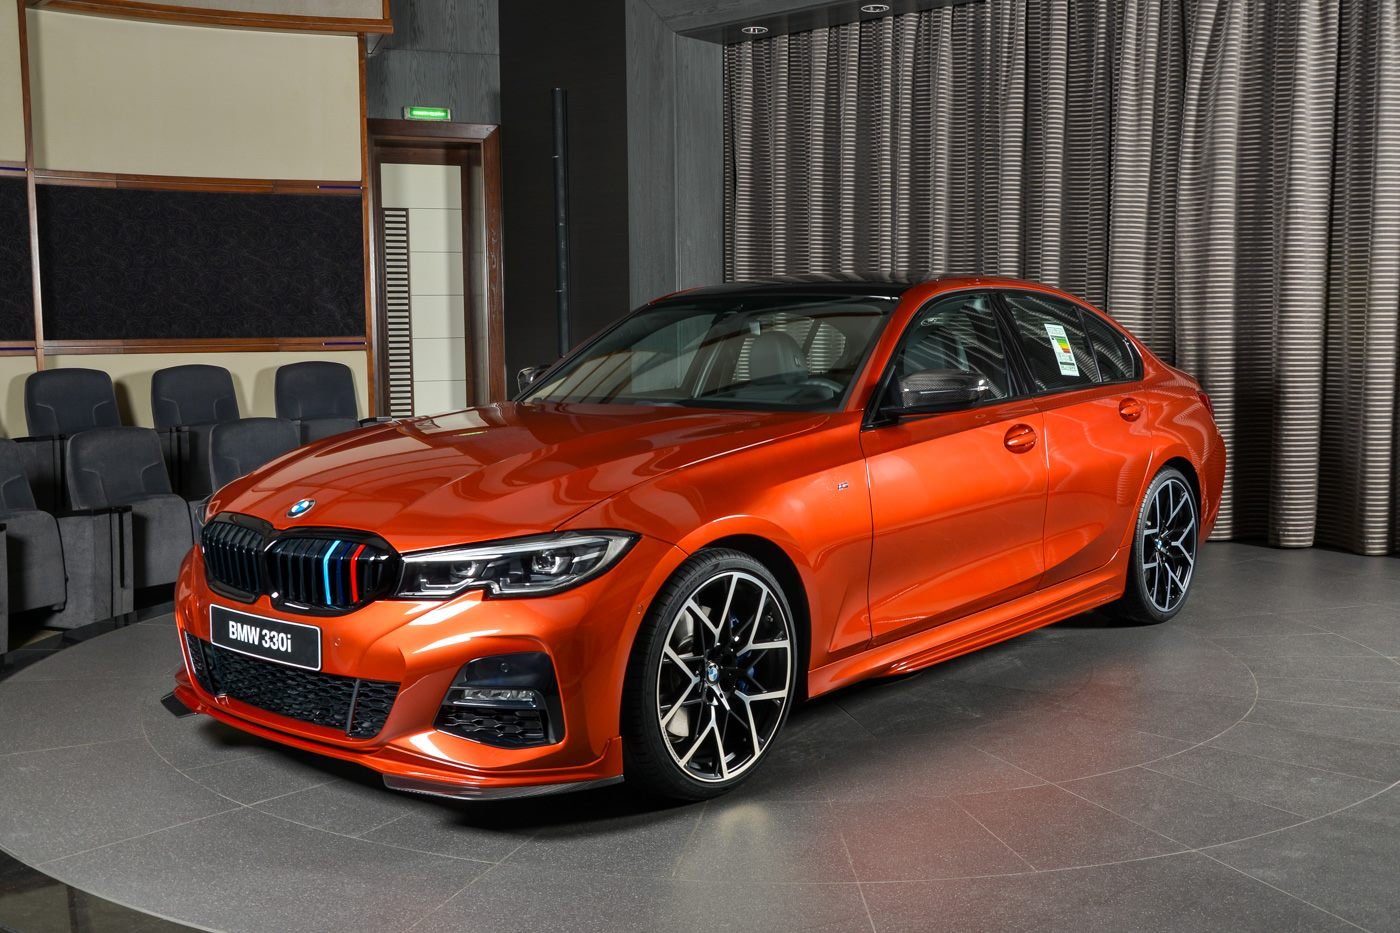 New Bmw 330i M Sport Has M Performance Parts And Sunset Orange Paint